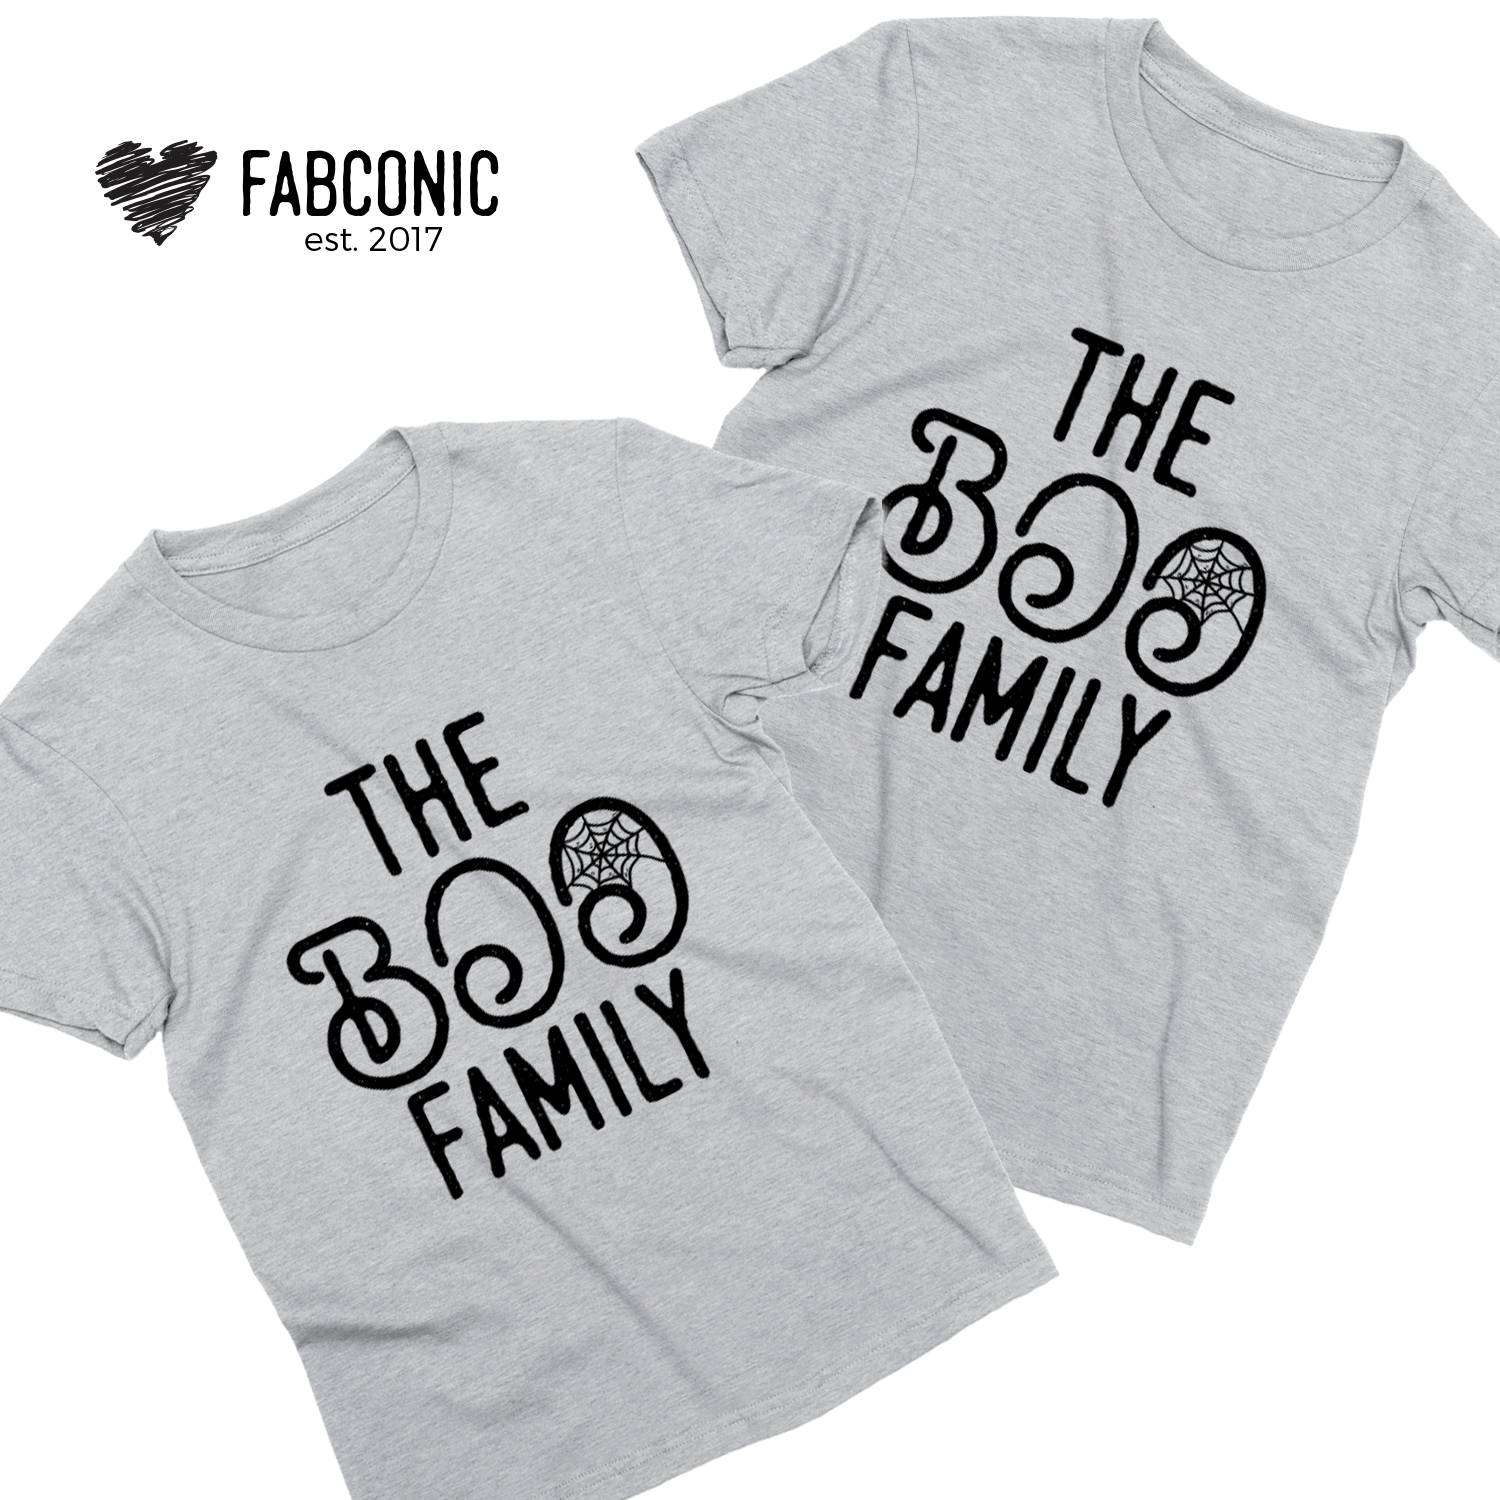 Halloween Shirt Ideas 2019.The Boo Family Couple Shirts